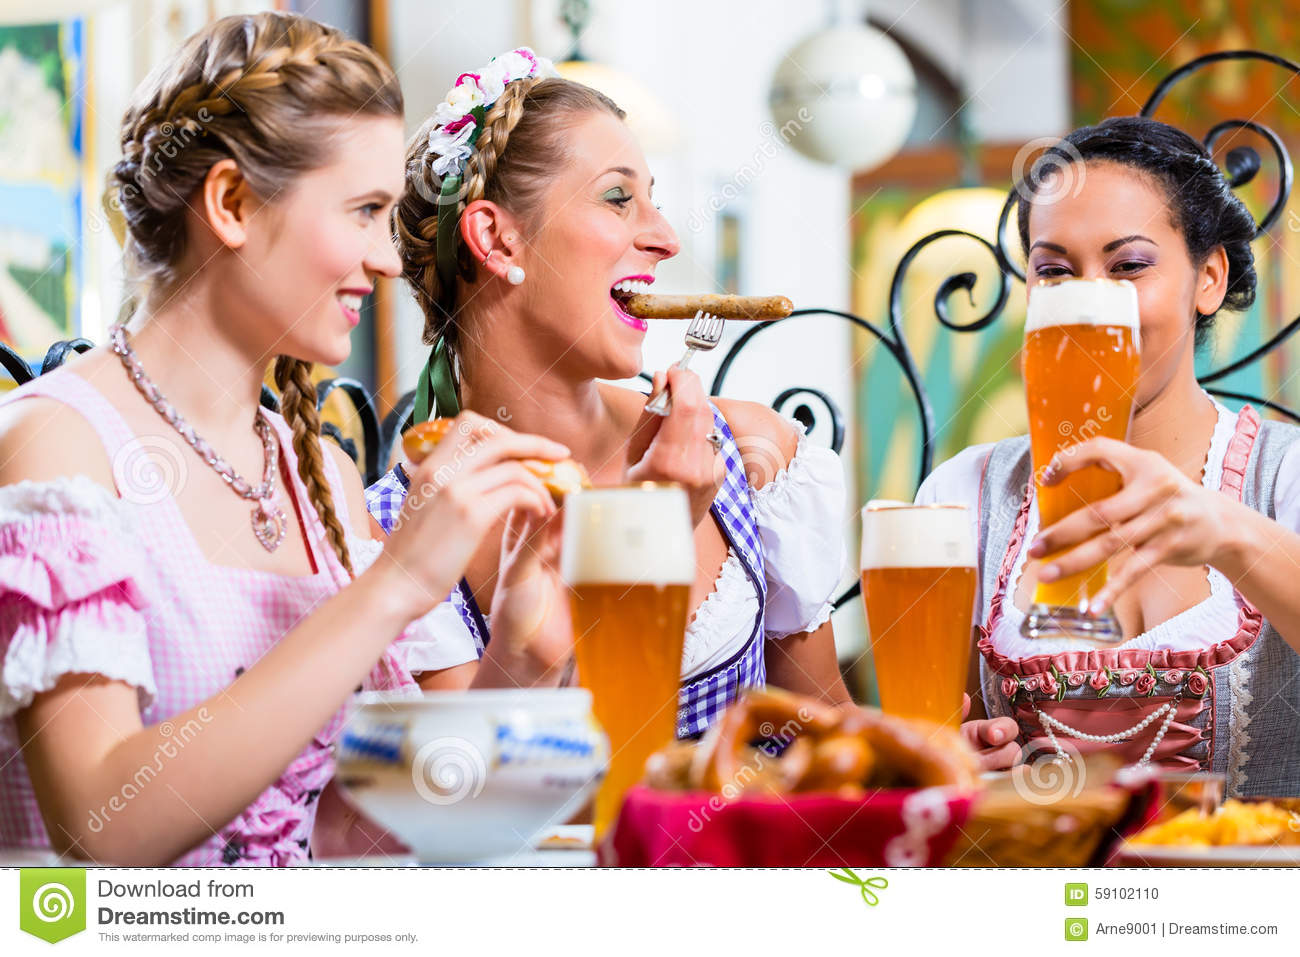 Women In Bavarian Pub Eating Food For Dinner Stock Photo.